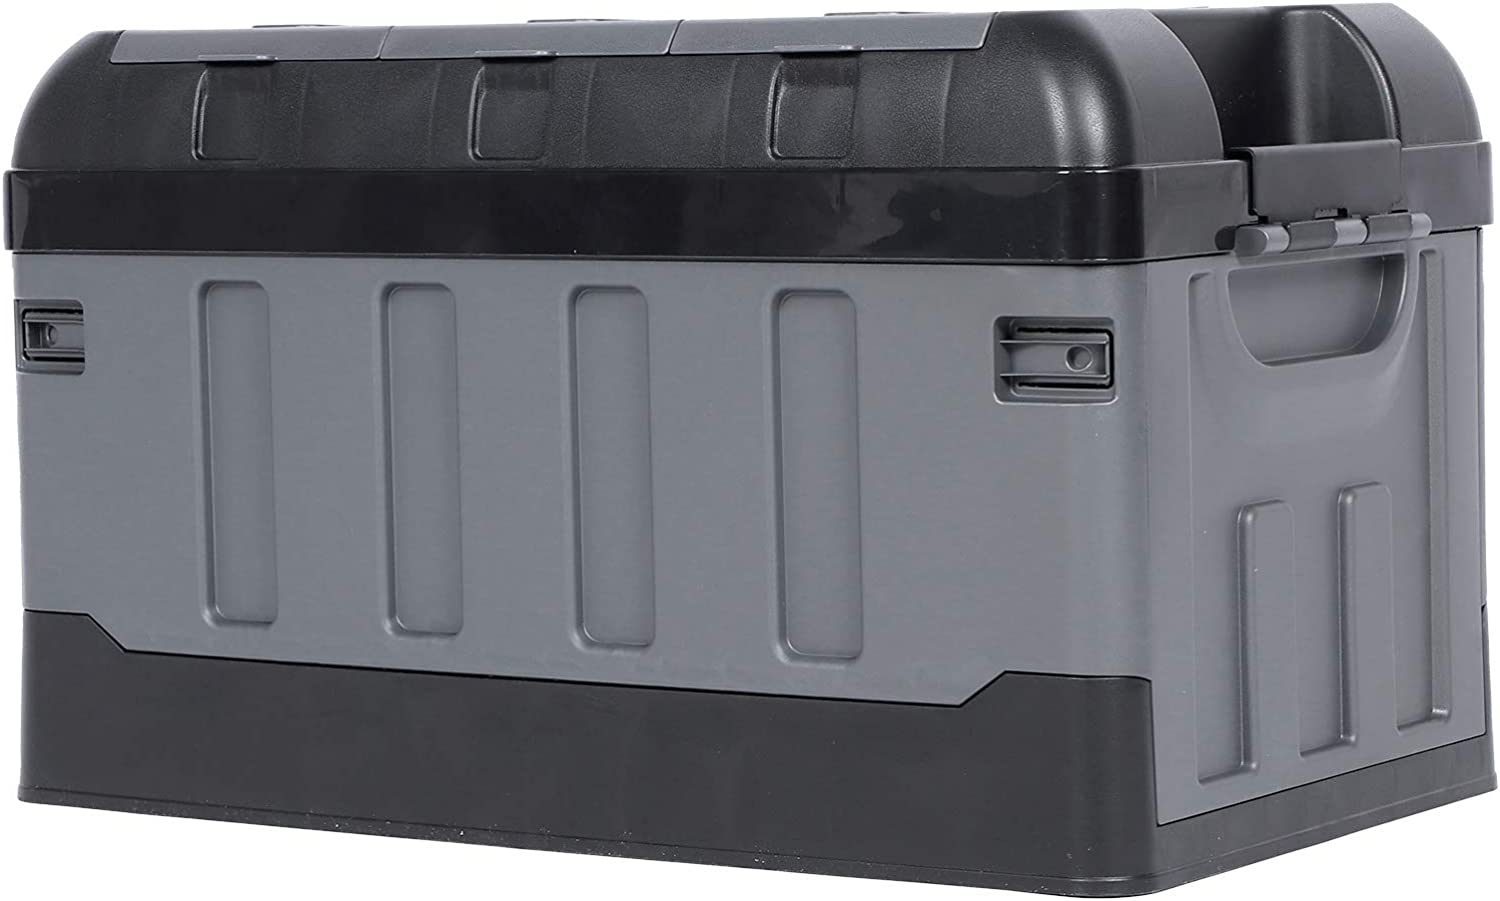 GOTOTOP Trunk Max 65% OFF Storage Box High‑ Strength Ranking TOP11 75L Ca Collapsible